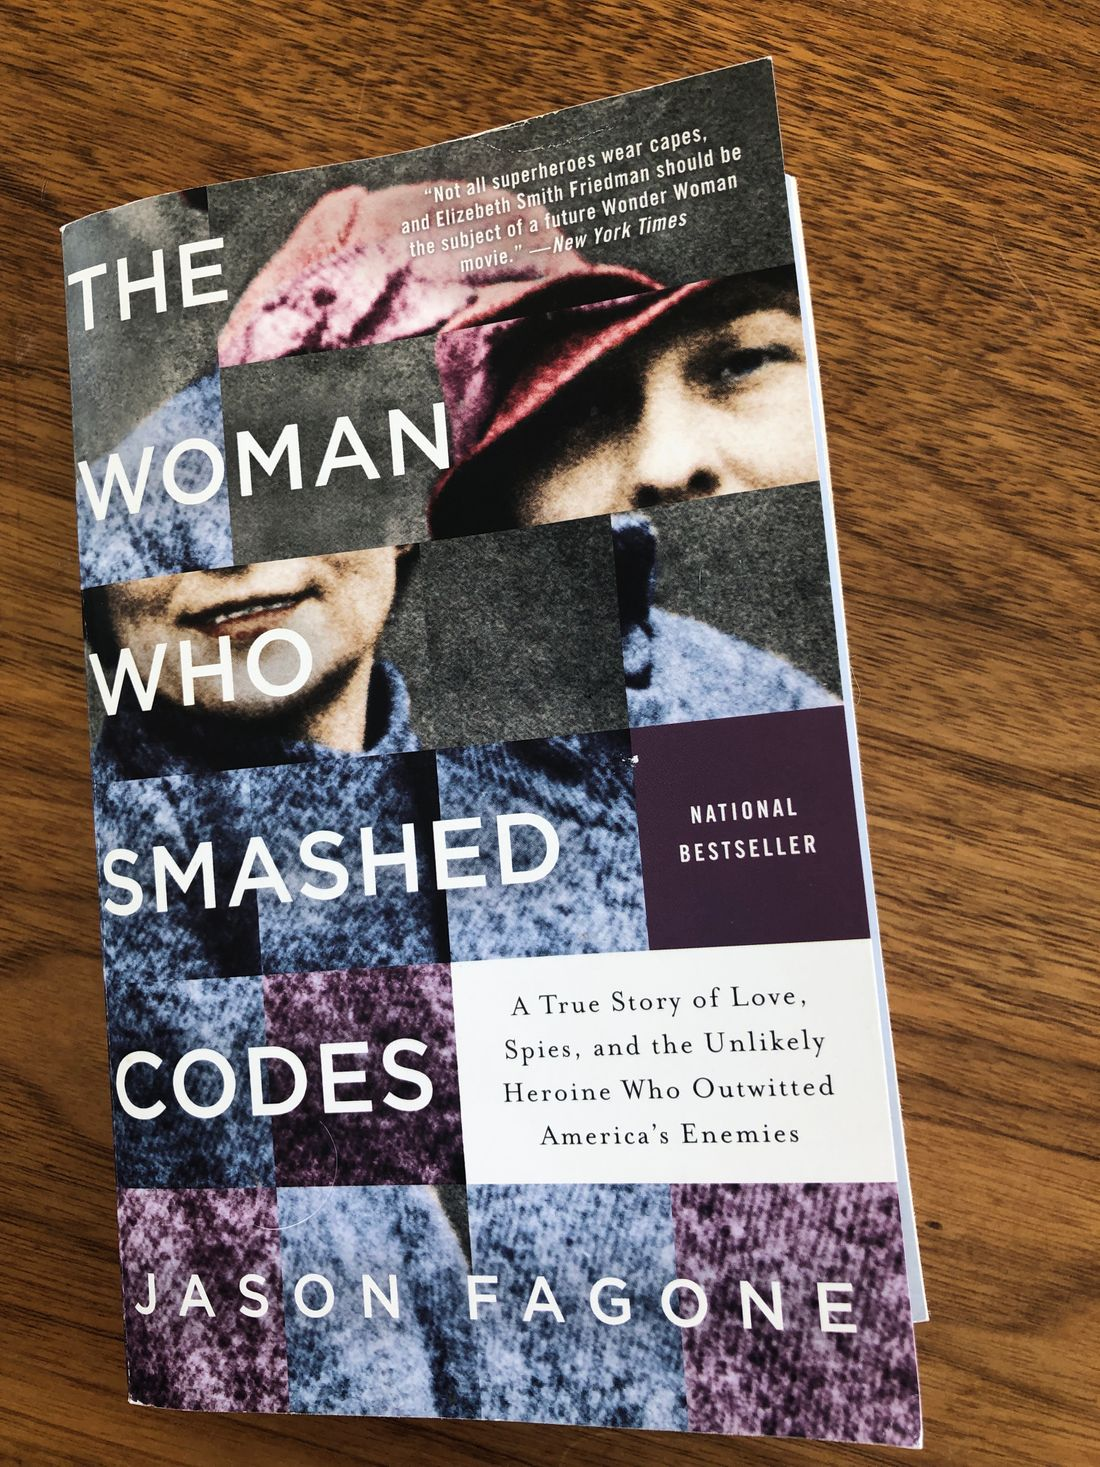 Book: The Woman Who Smashed Codes